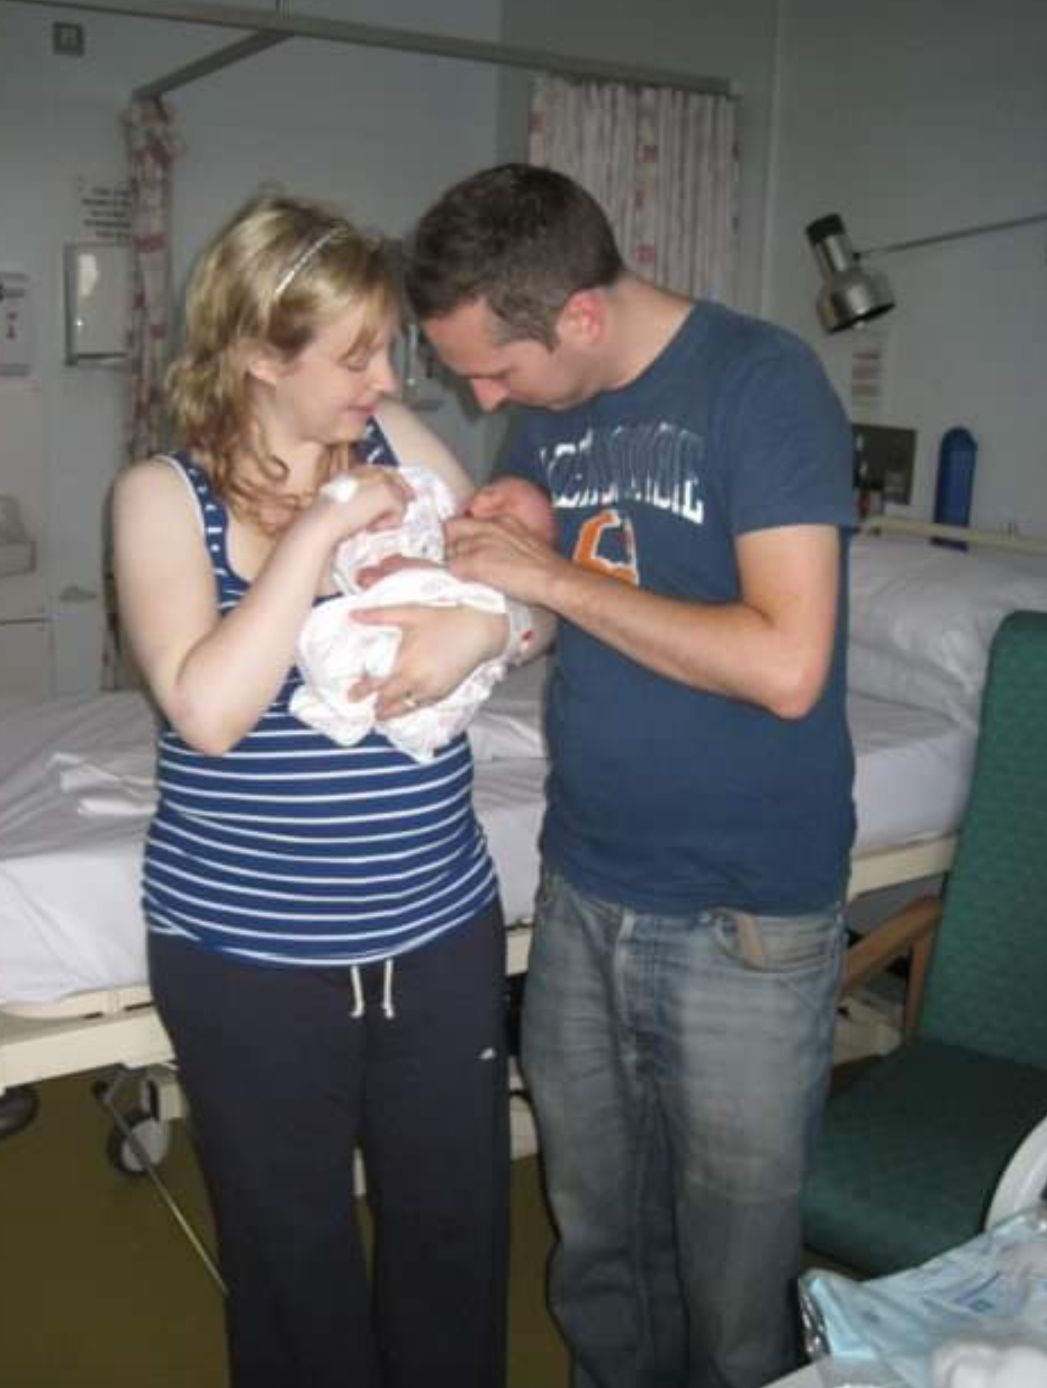 July 2010: just two weeks after moving in we welcomed our first son